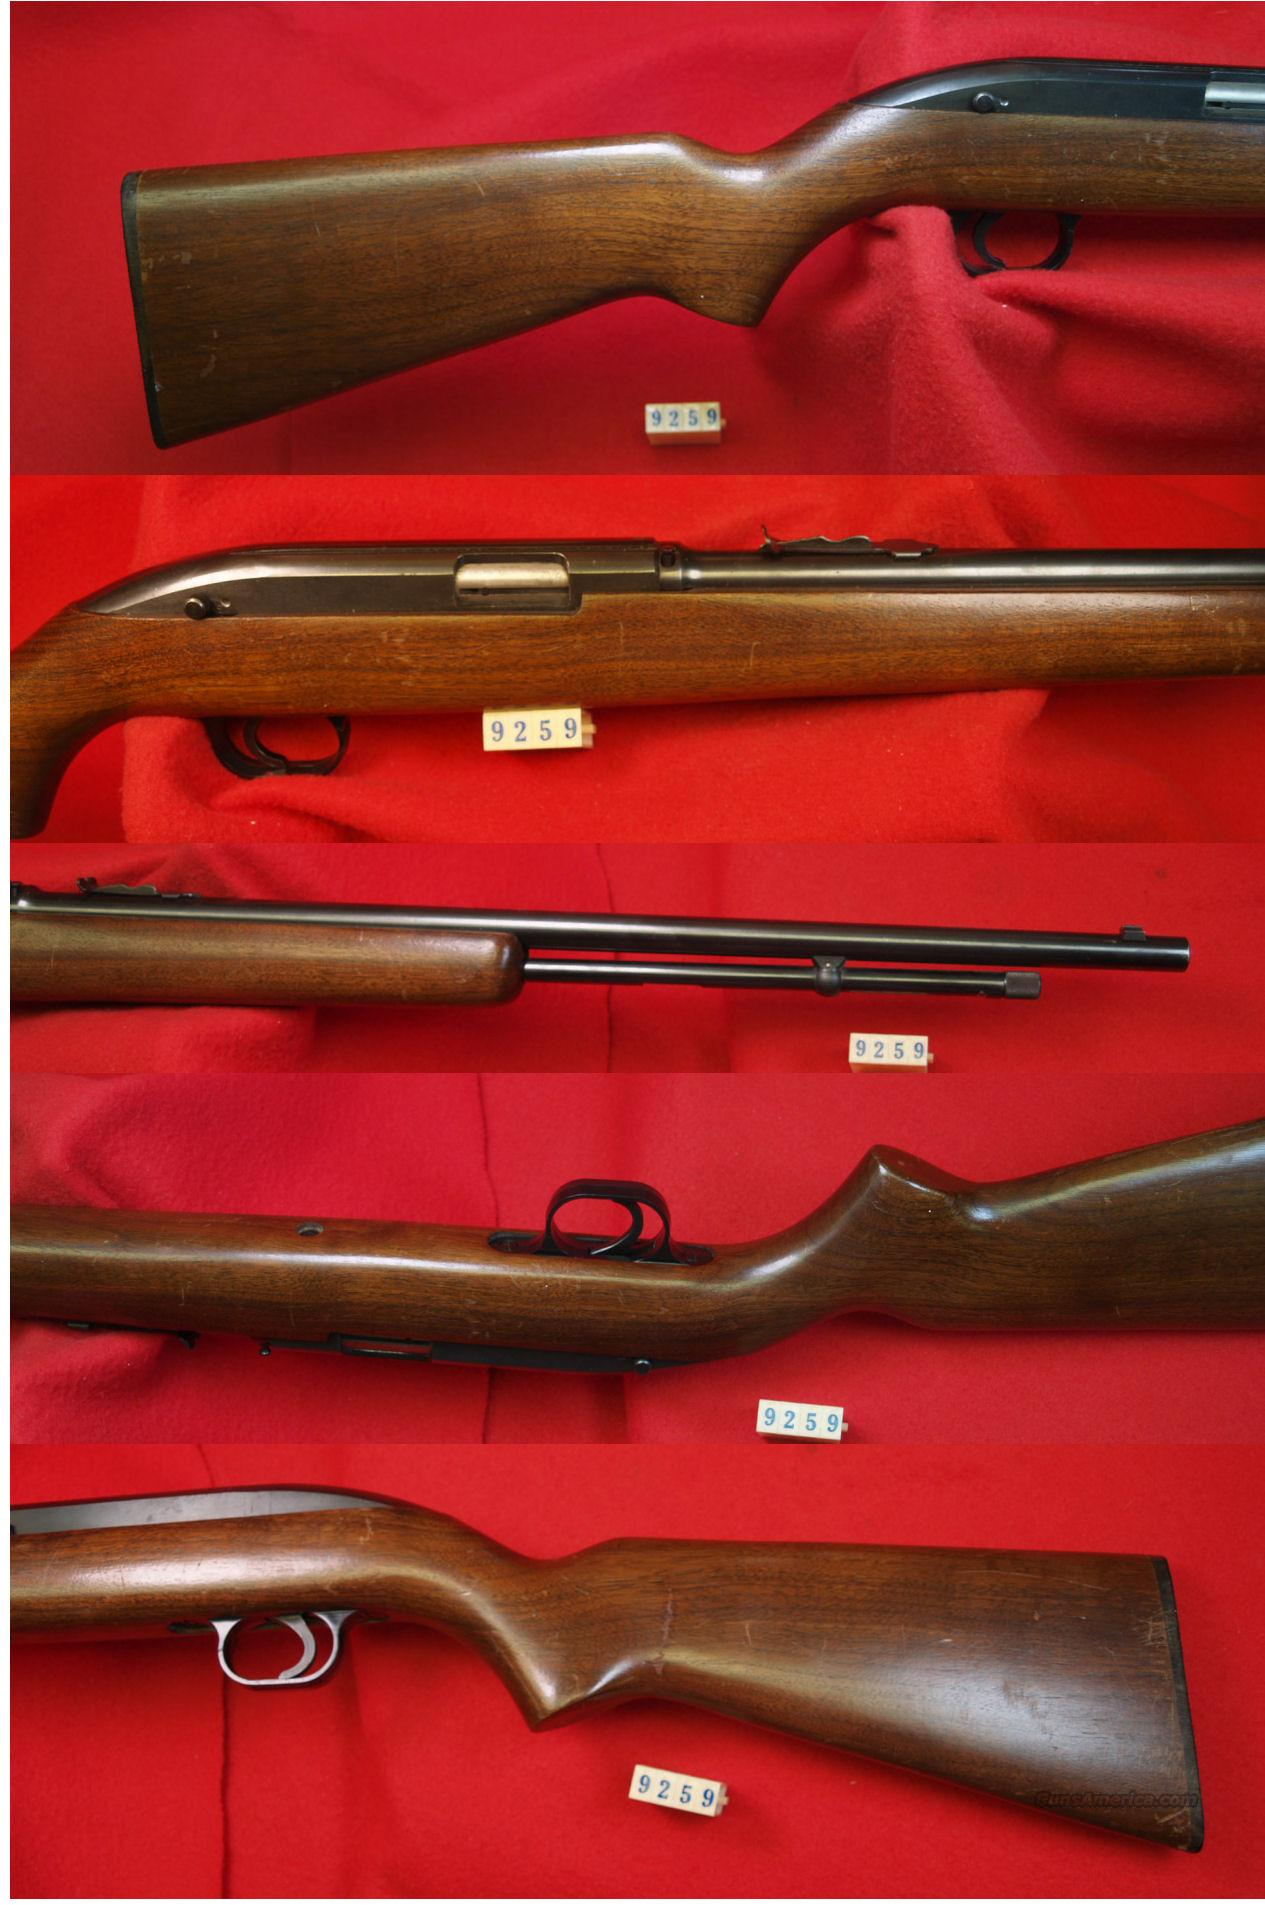 WINCHESTER M-77  22LR  Guns > Rifles > Winchester Rifles - Modern Bolt/Auto/Single > Autoloaders